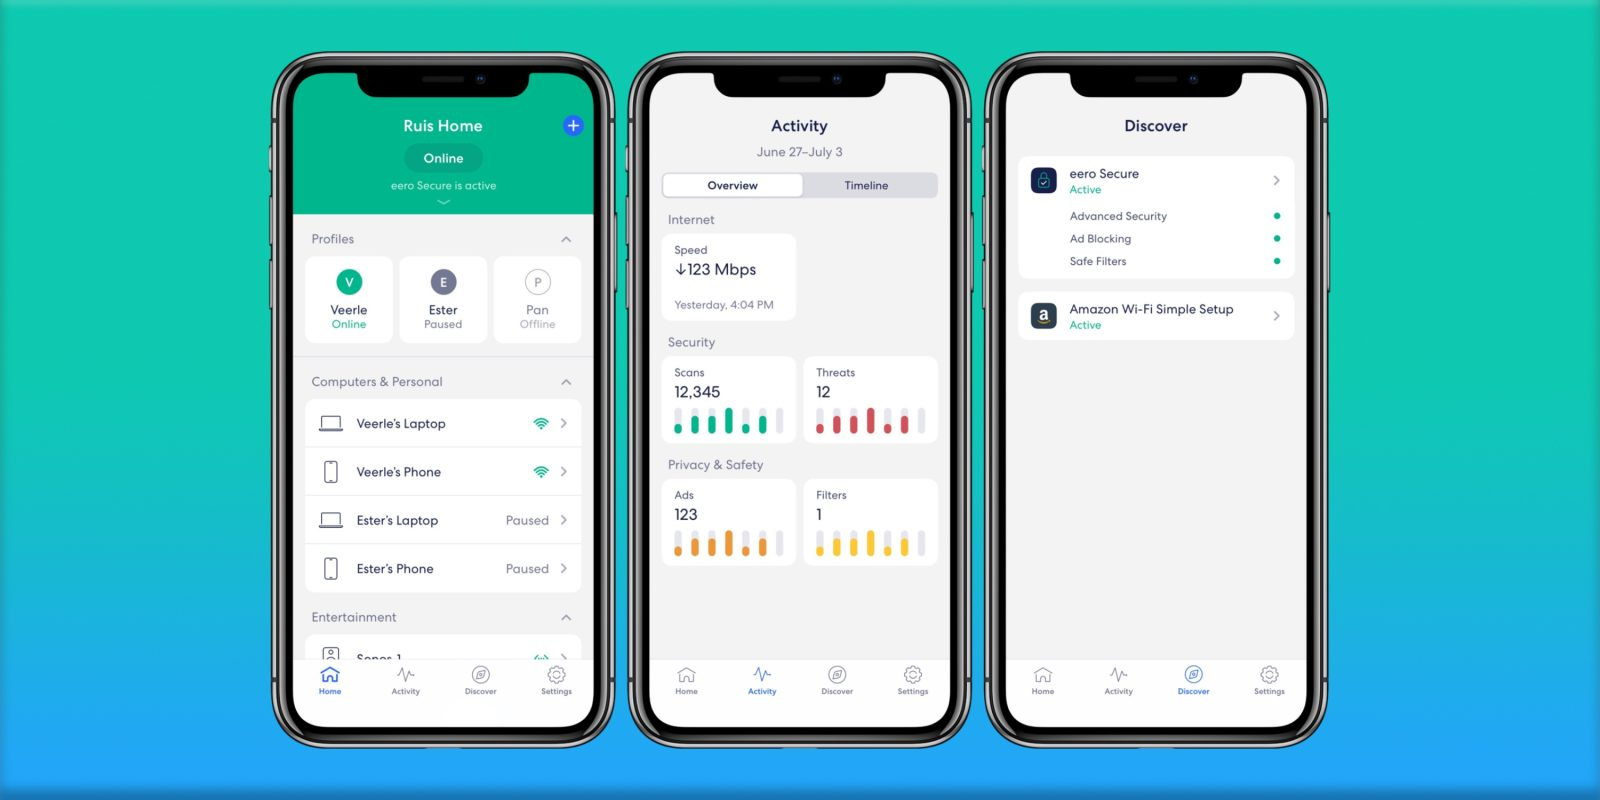 Eero For Ios Gets Cleaner Tab Design